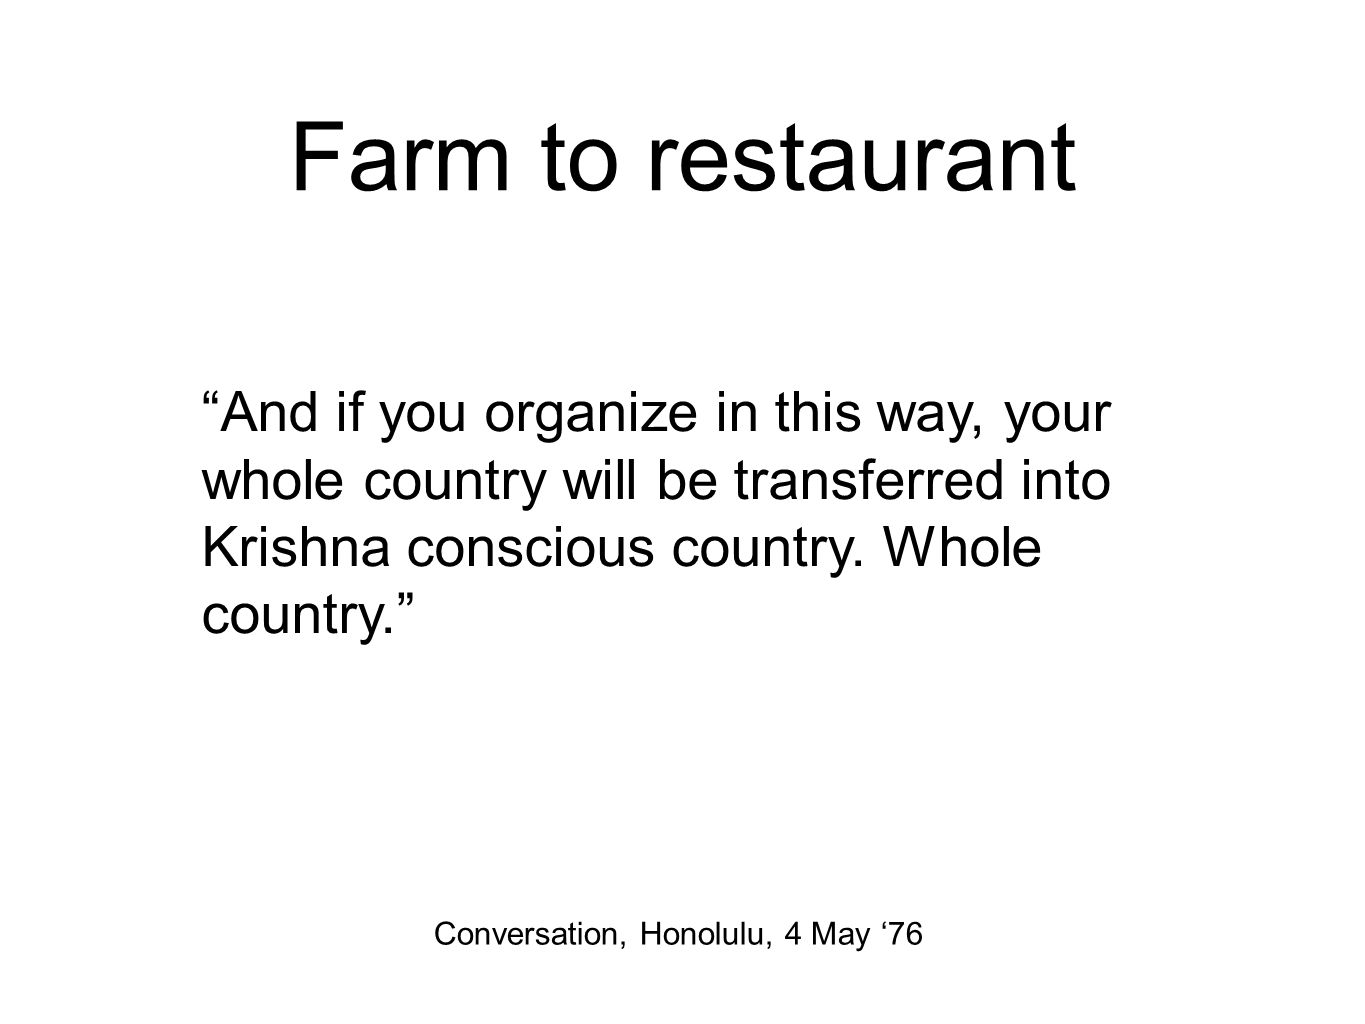 Farm to restaurant And if you organize in this way, your whole country will be transferred into Krishna conscious country.